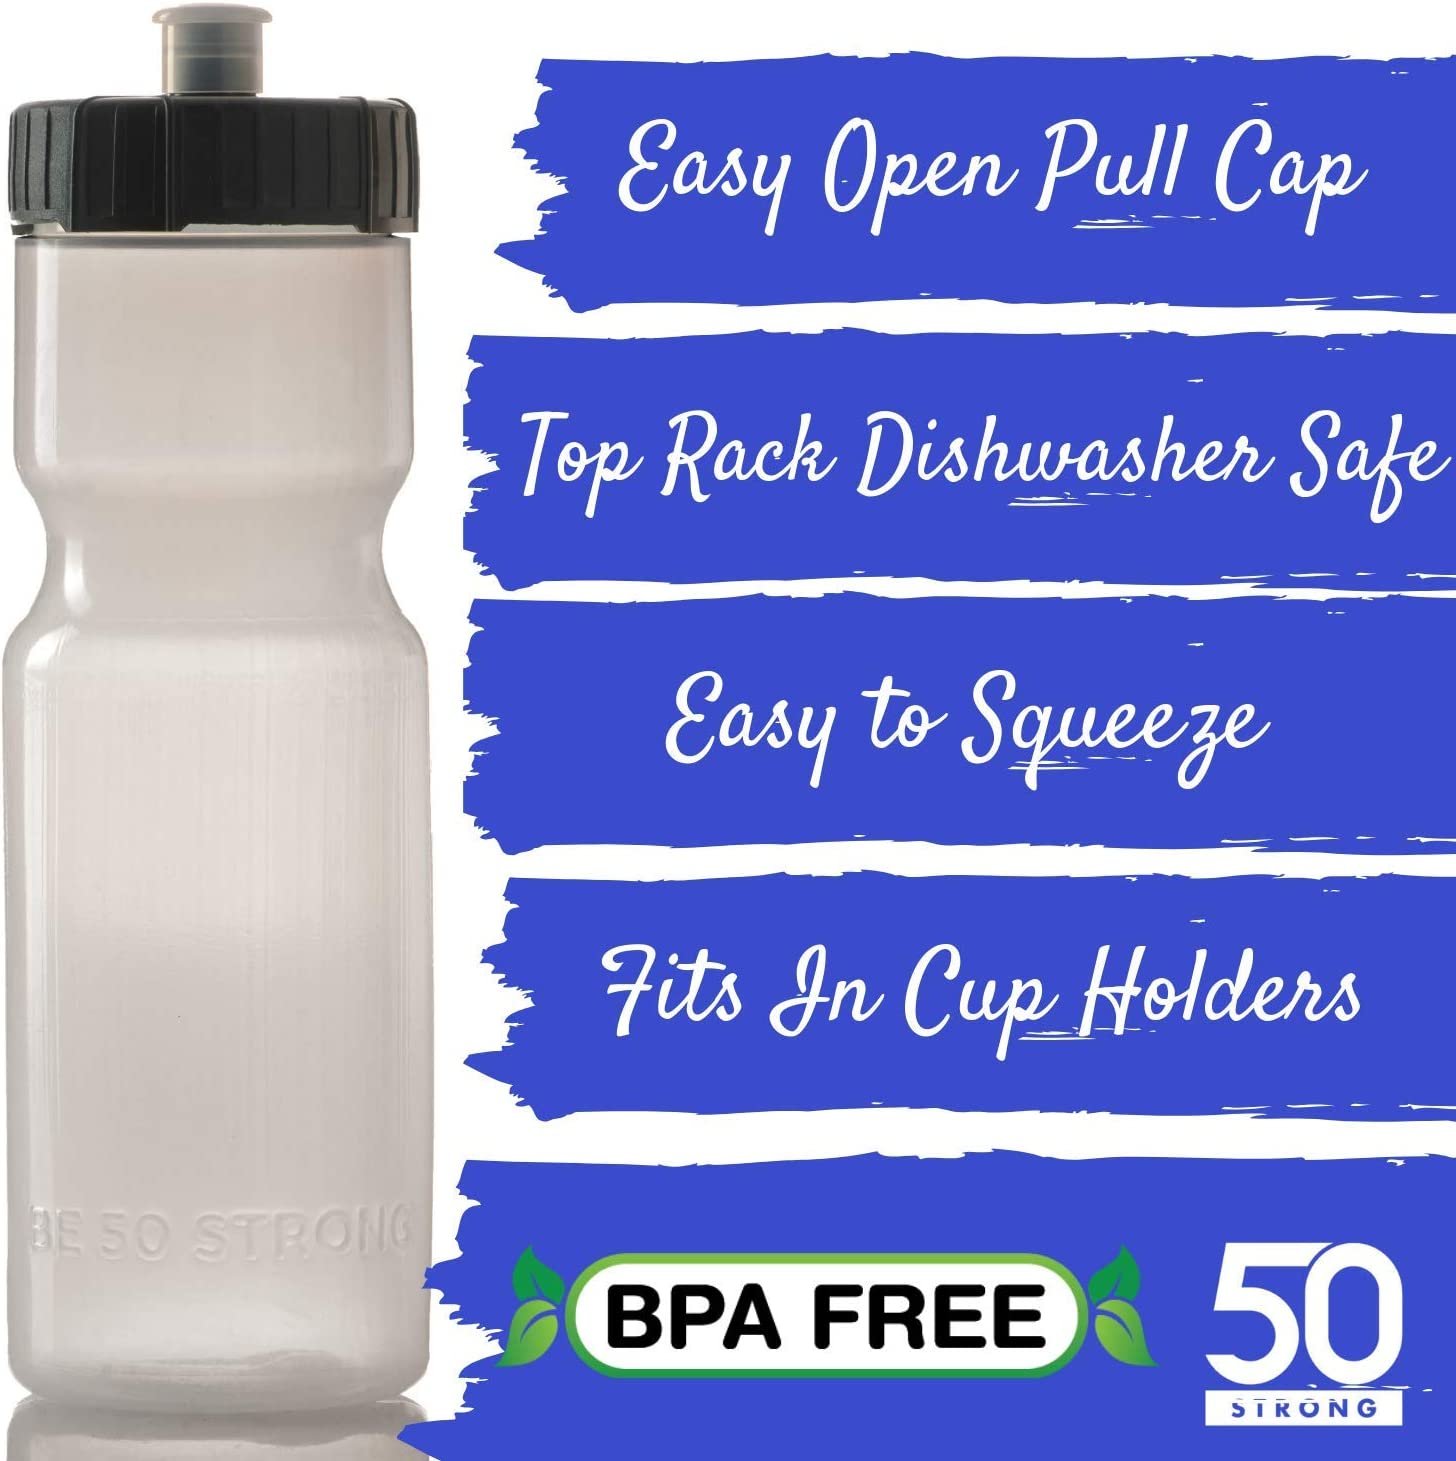 50 Strong Sports Squeeze Water Bottle 2 Pack Top Rack Dishwasher Safe USA Made Great for Adults /& Kids BPA Free Easy Open Push//Pull Cap 22 oz Bottles Fit in Bike Cages